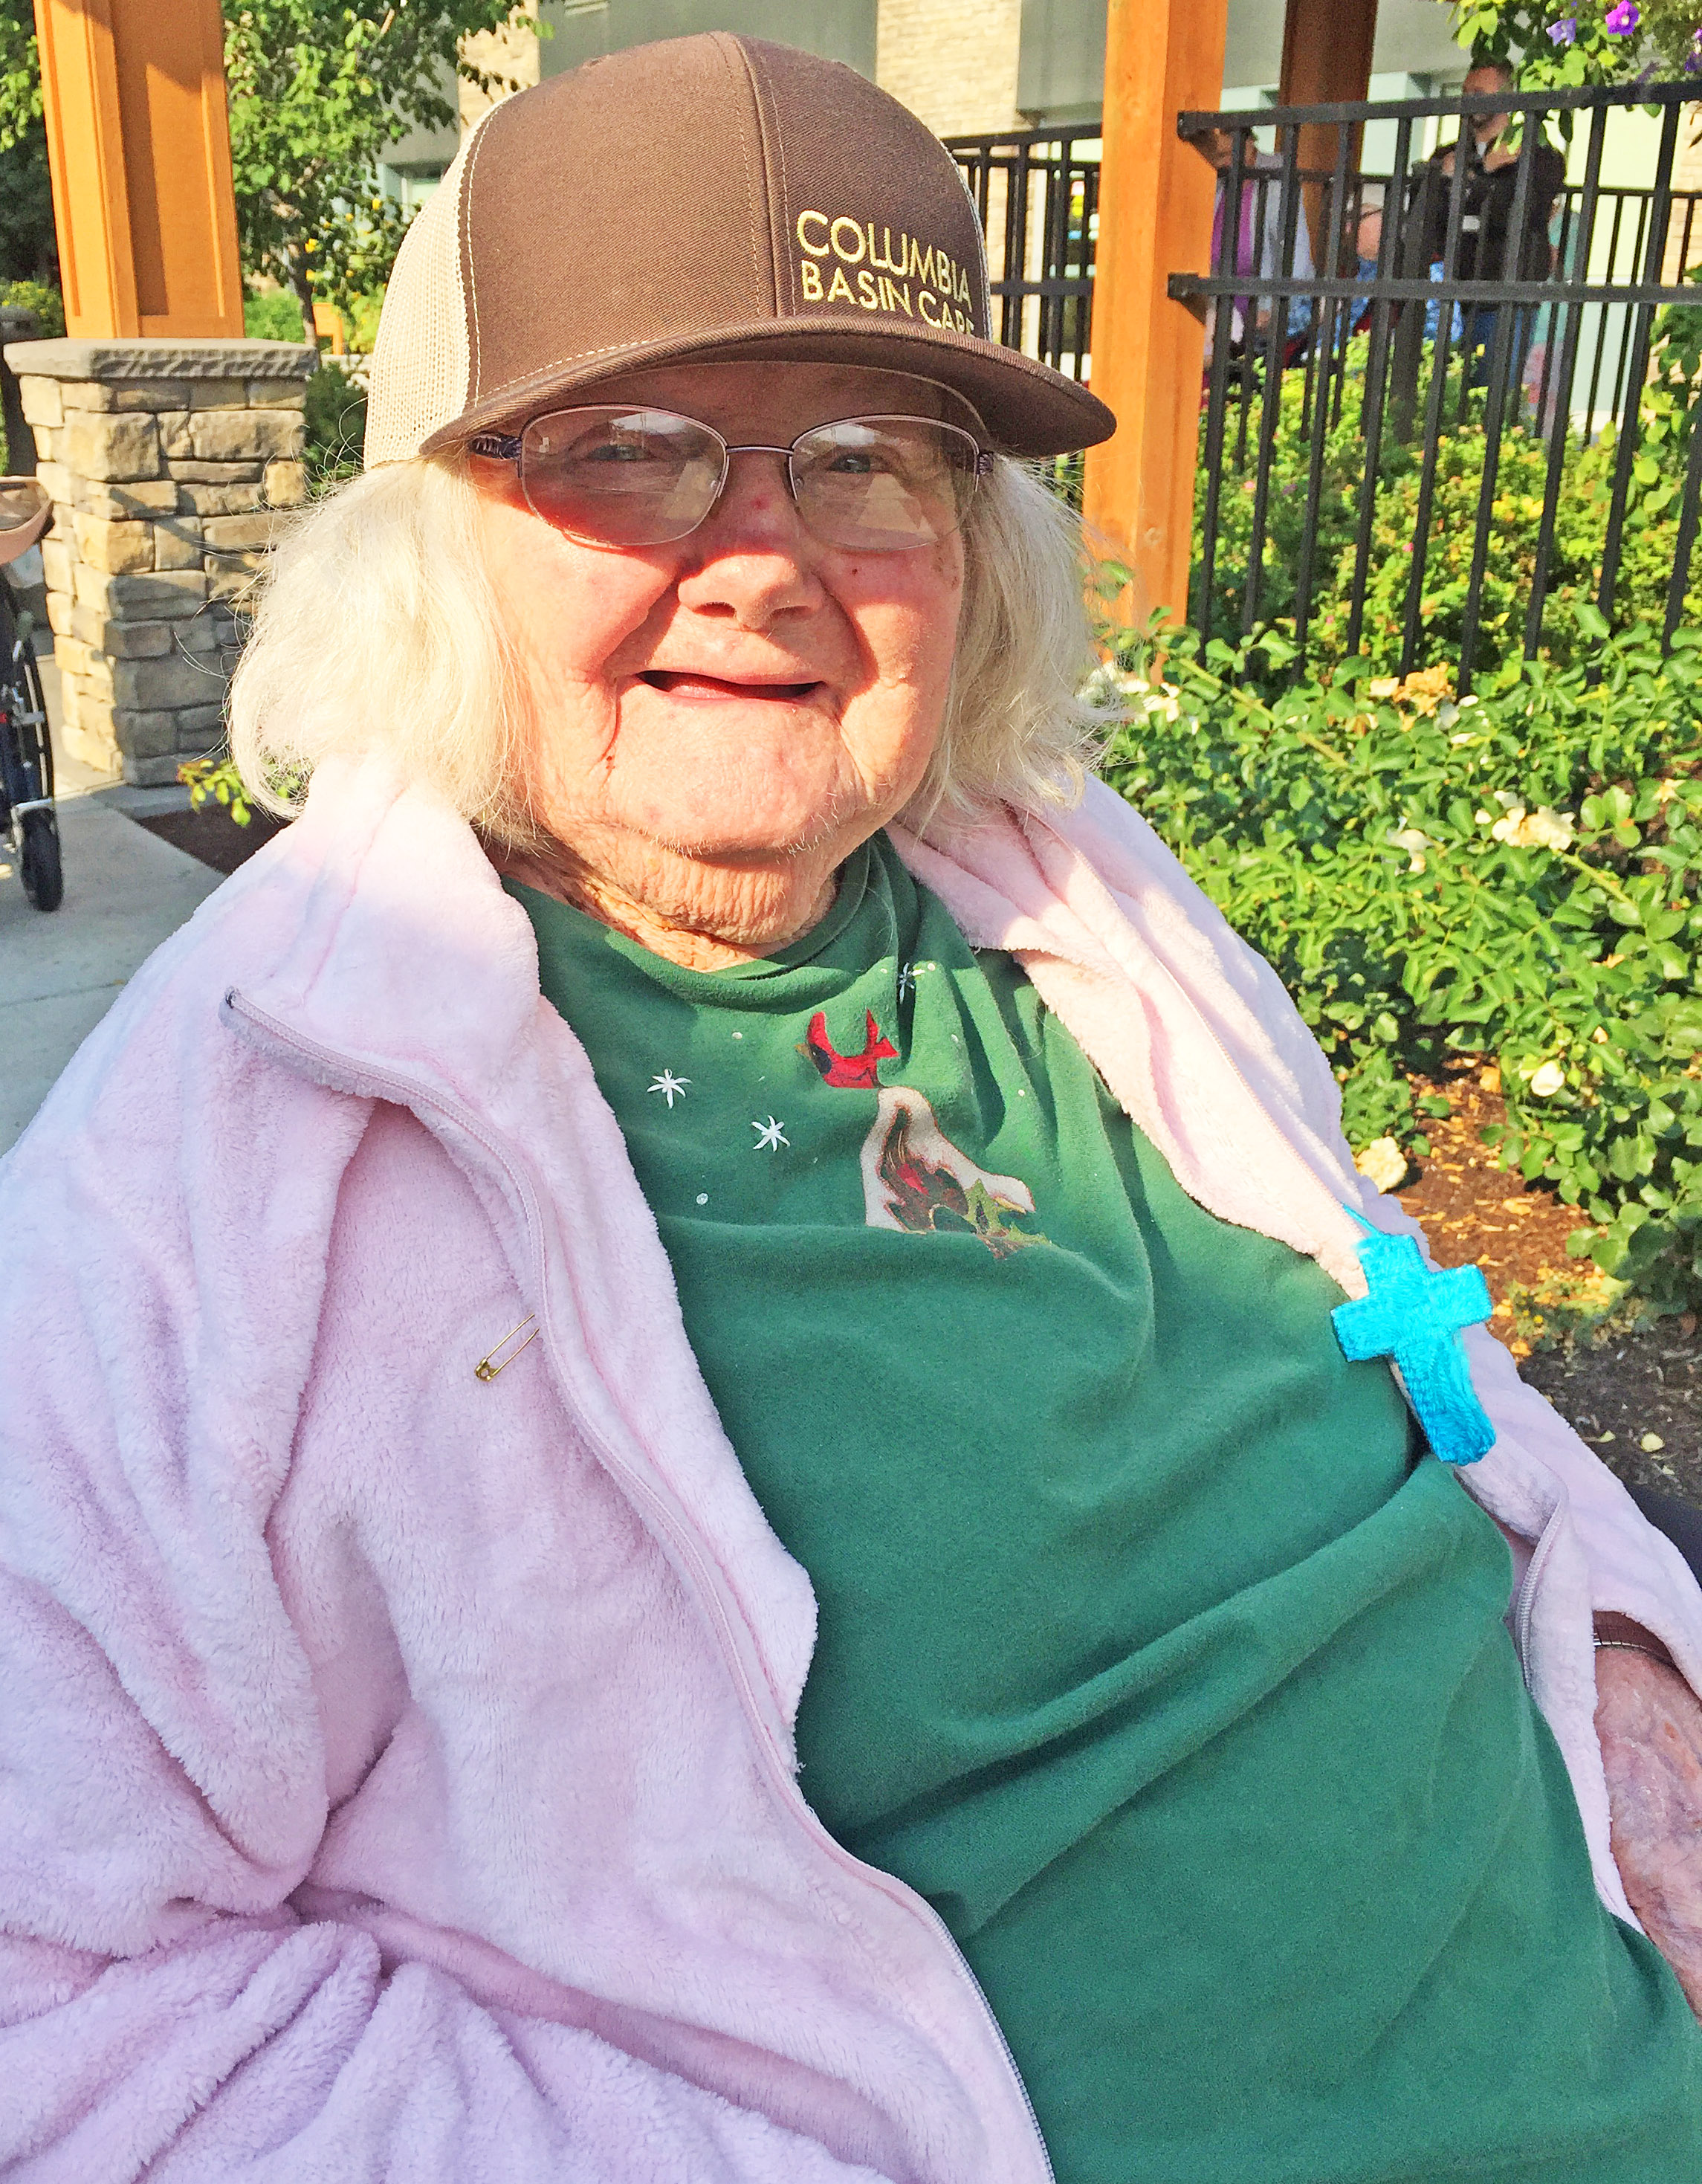 Laura Ashbrenner, 105, lives at Columbia Basin Care, where she still draws and paints.